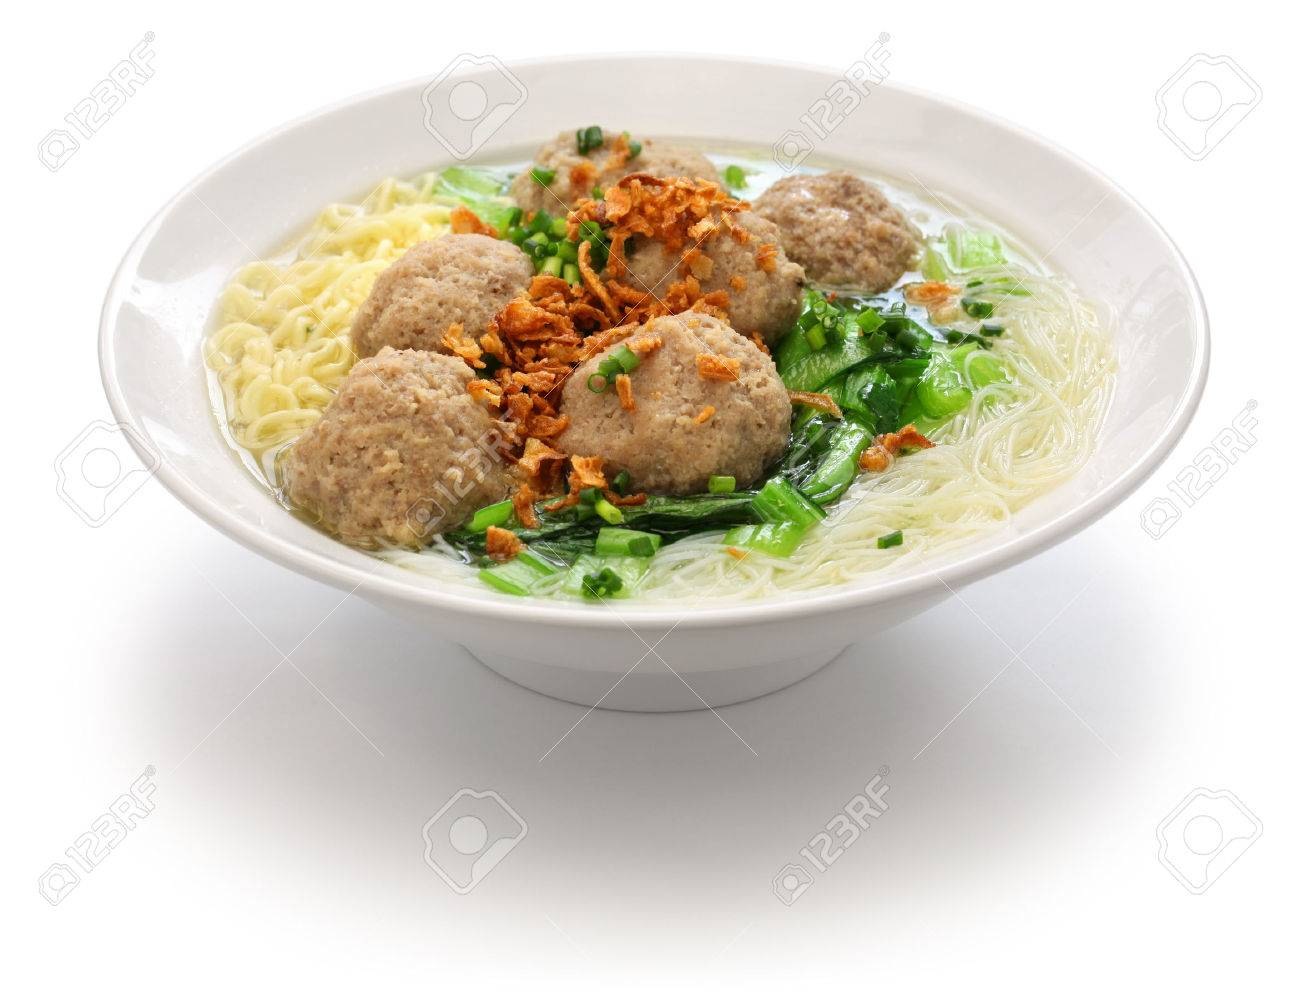 meatball soup with noodles, bakso and indonesian cuisine Stock Photo - 51319082